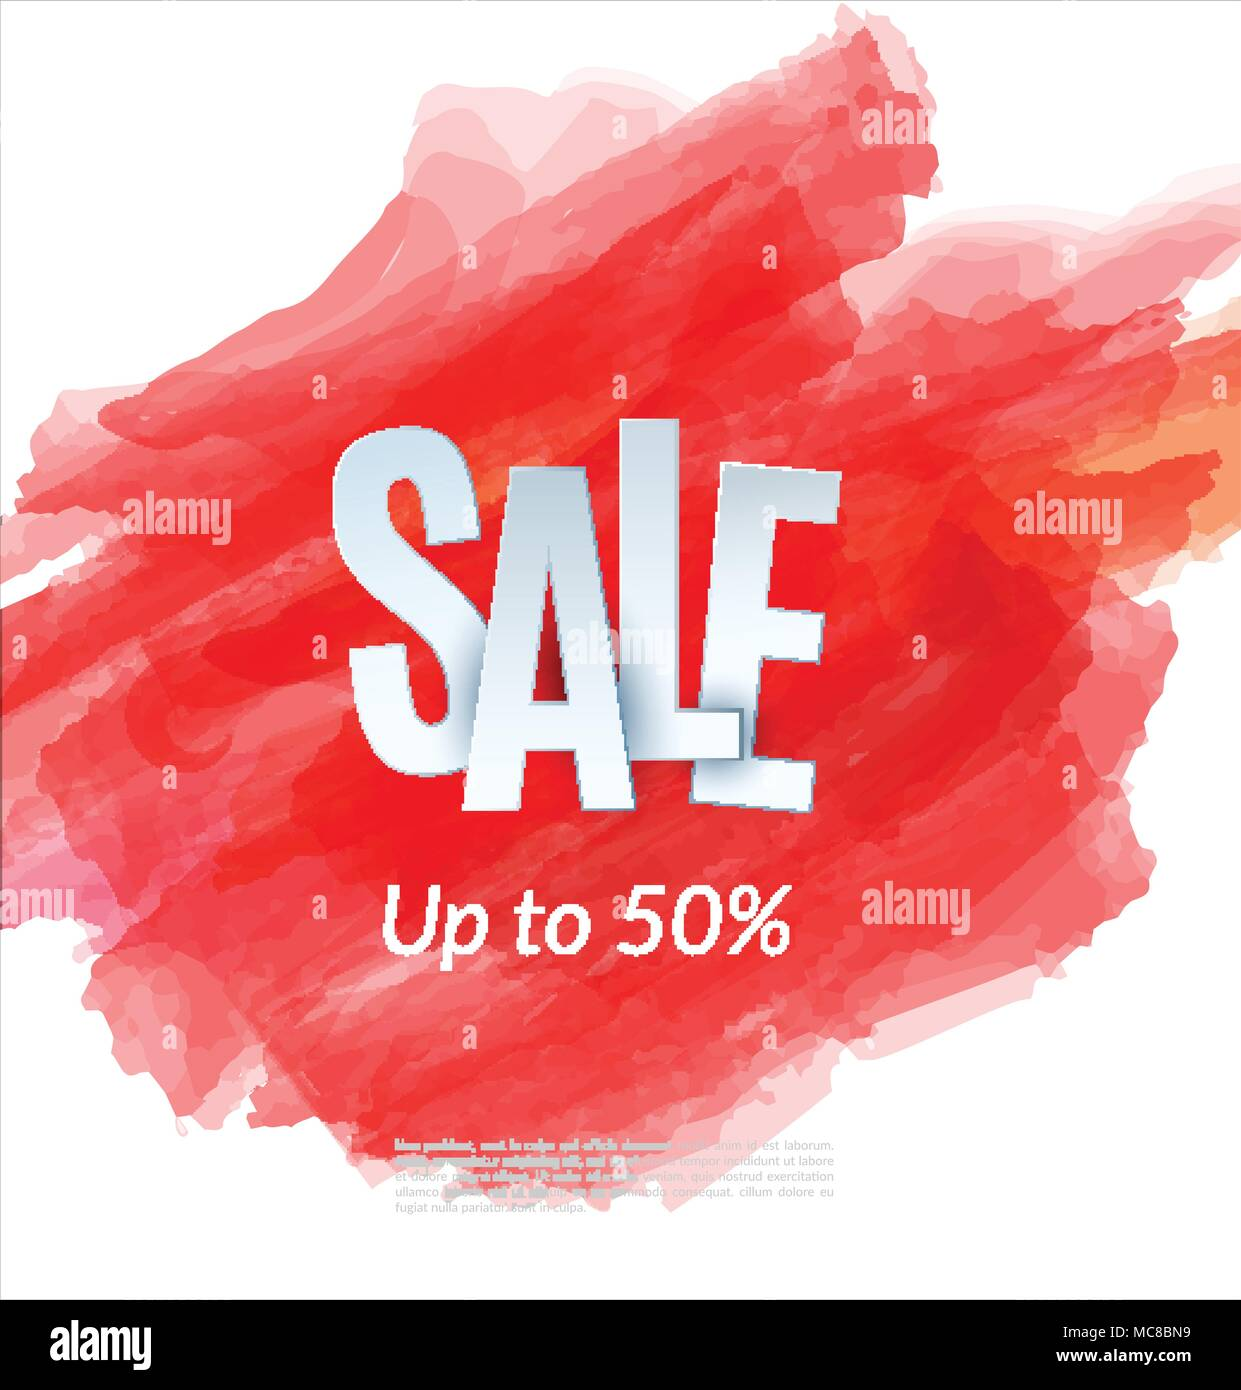 27 Cheap Design Ideas Offering: Sale Artistic Banner Template Design On Red Sketch